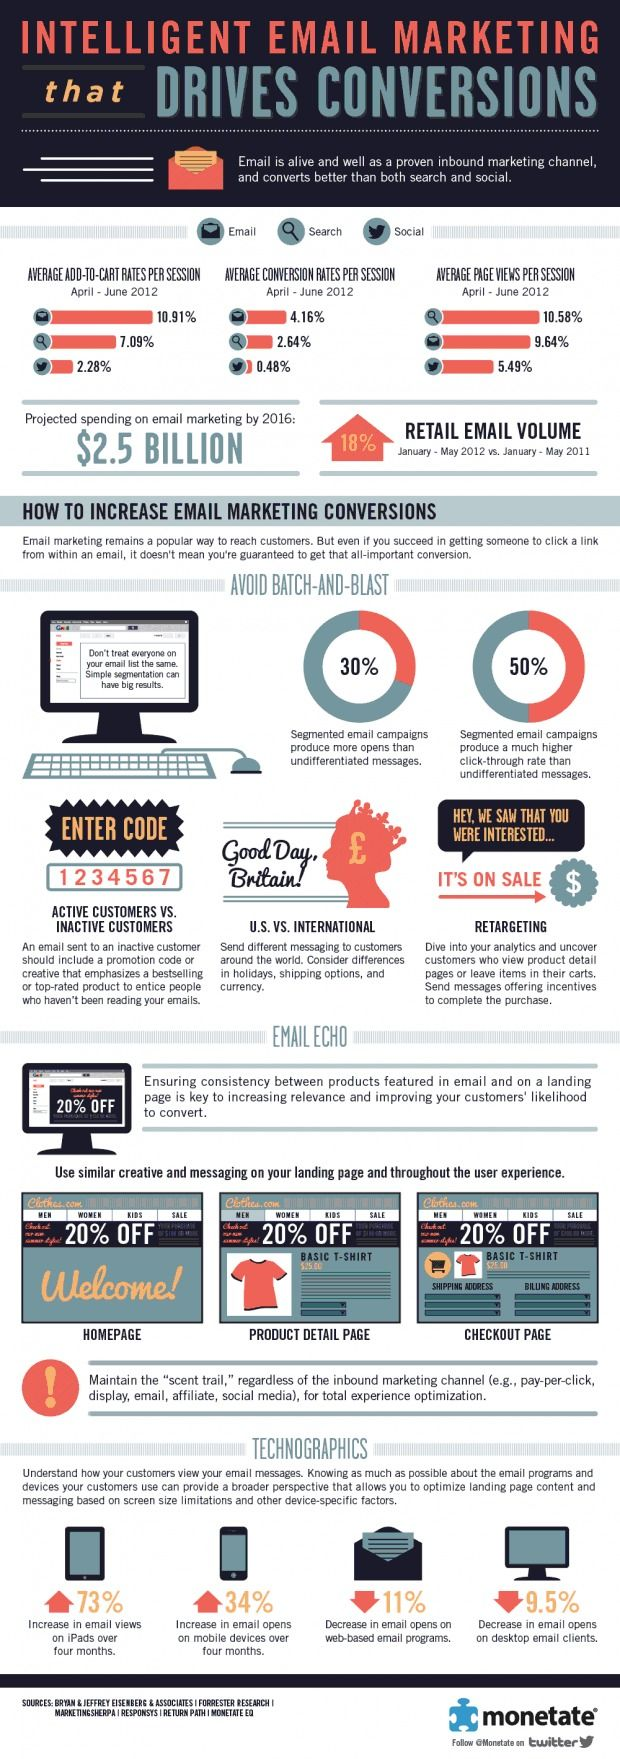 Intelligent Email #Marketing Drives Conversions